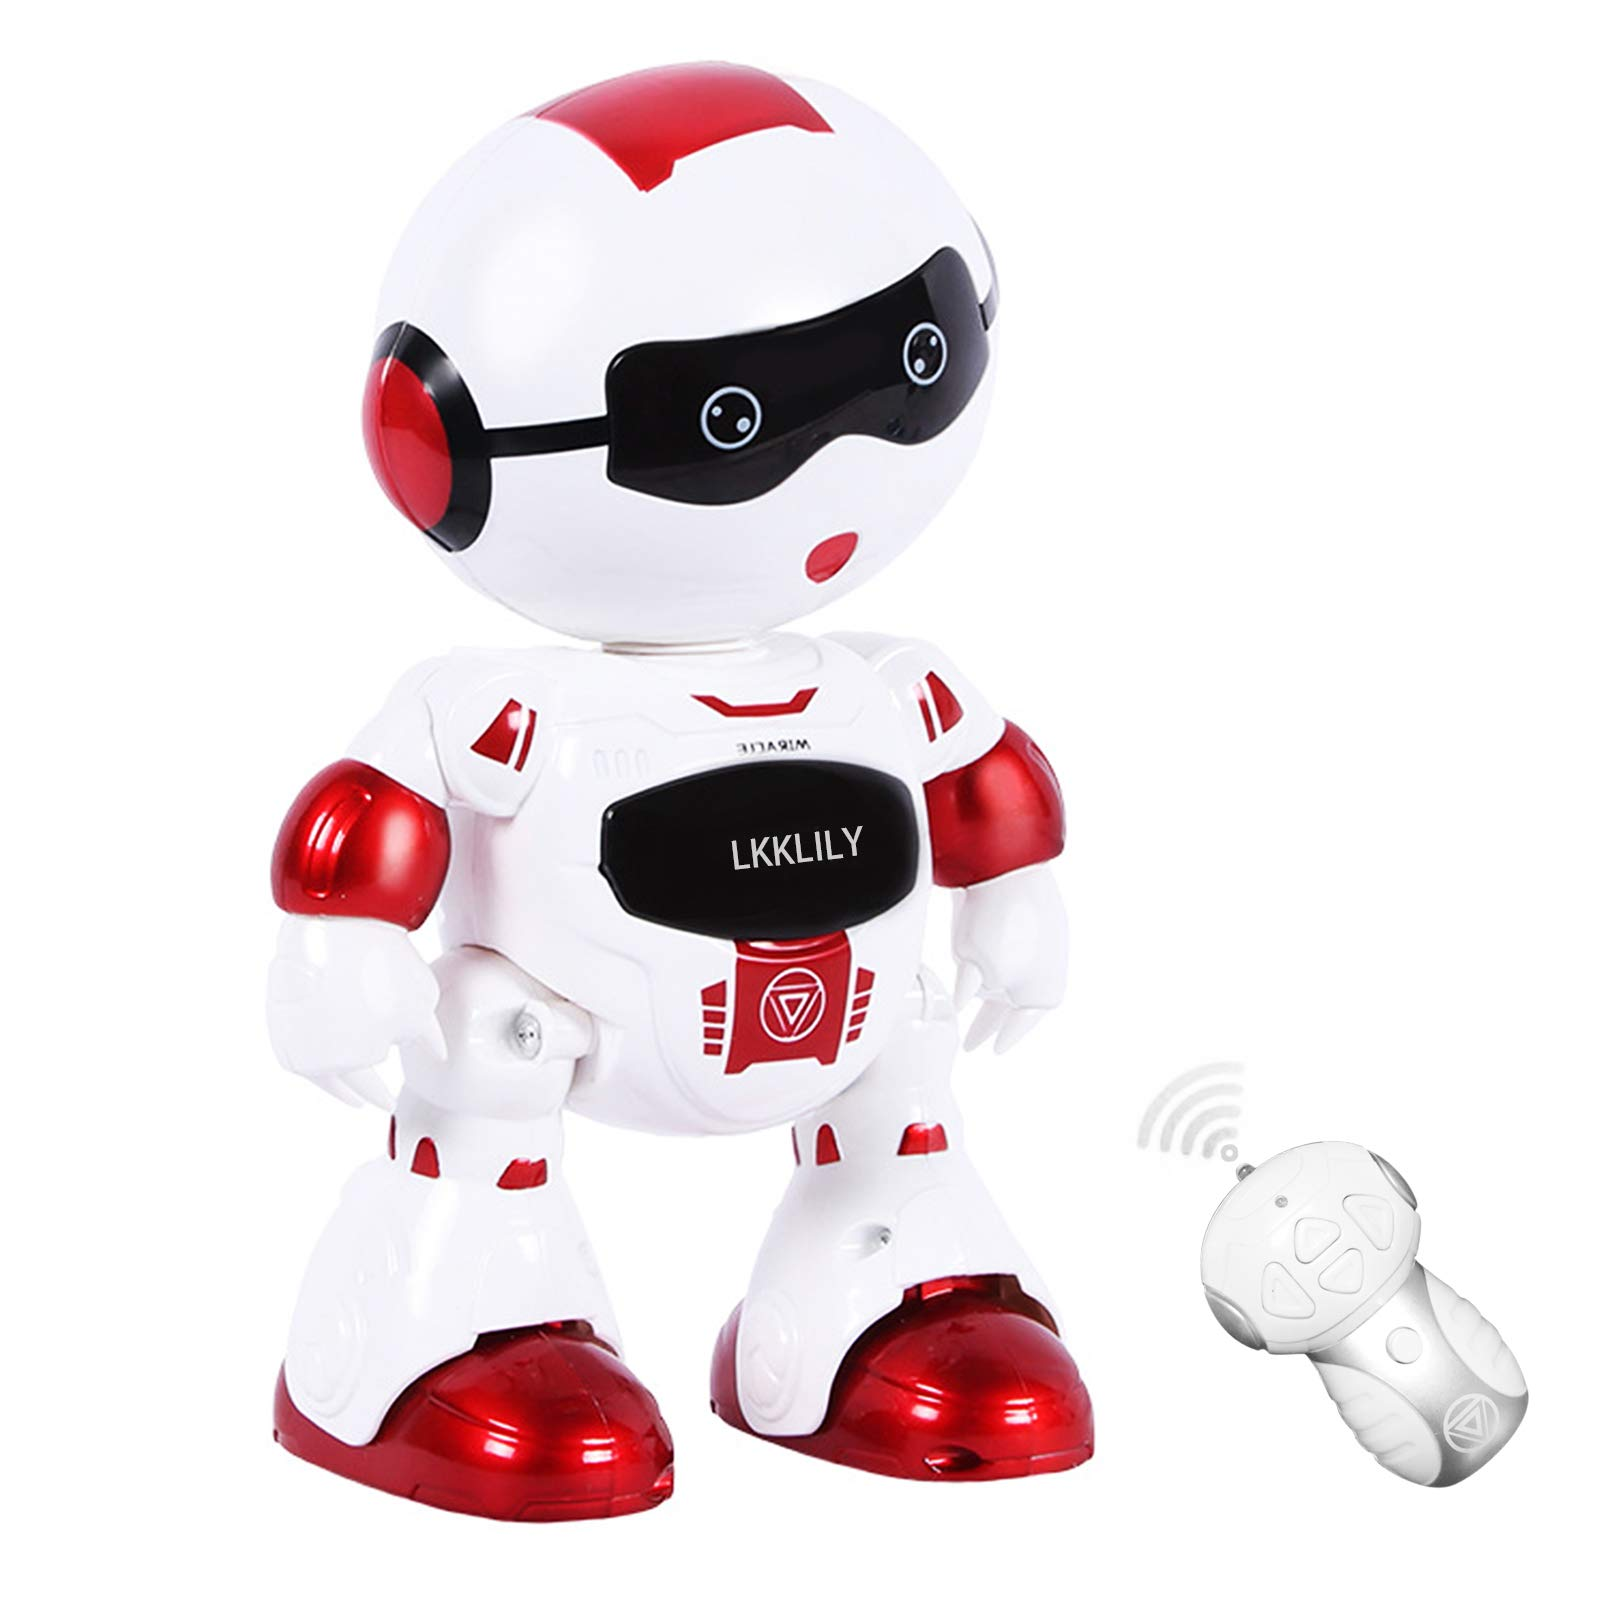 LKKLILY Remote Control Robot with Touch Interaction Music Dance and Lights Remote Toy for Children Kids and Kids Gifts (Red)